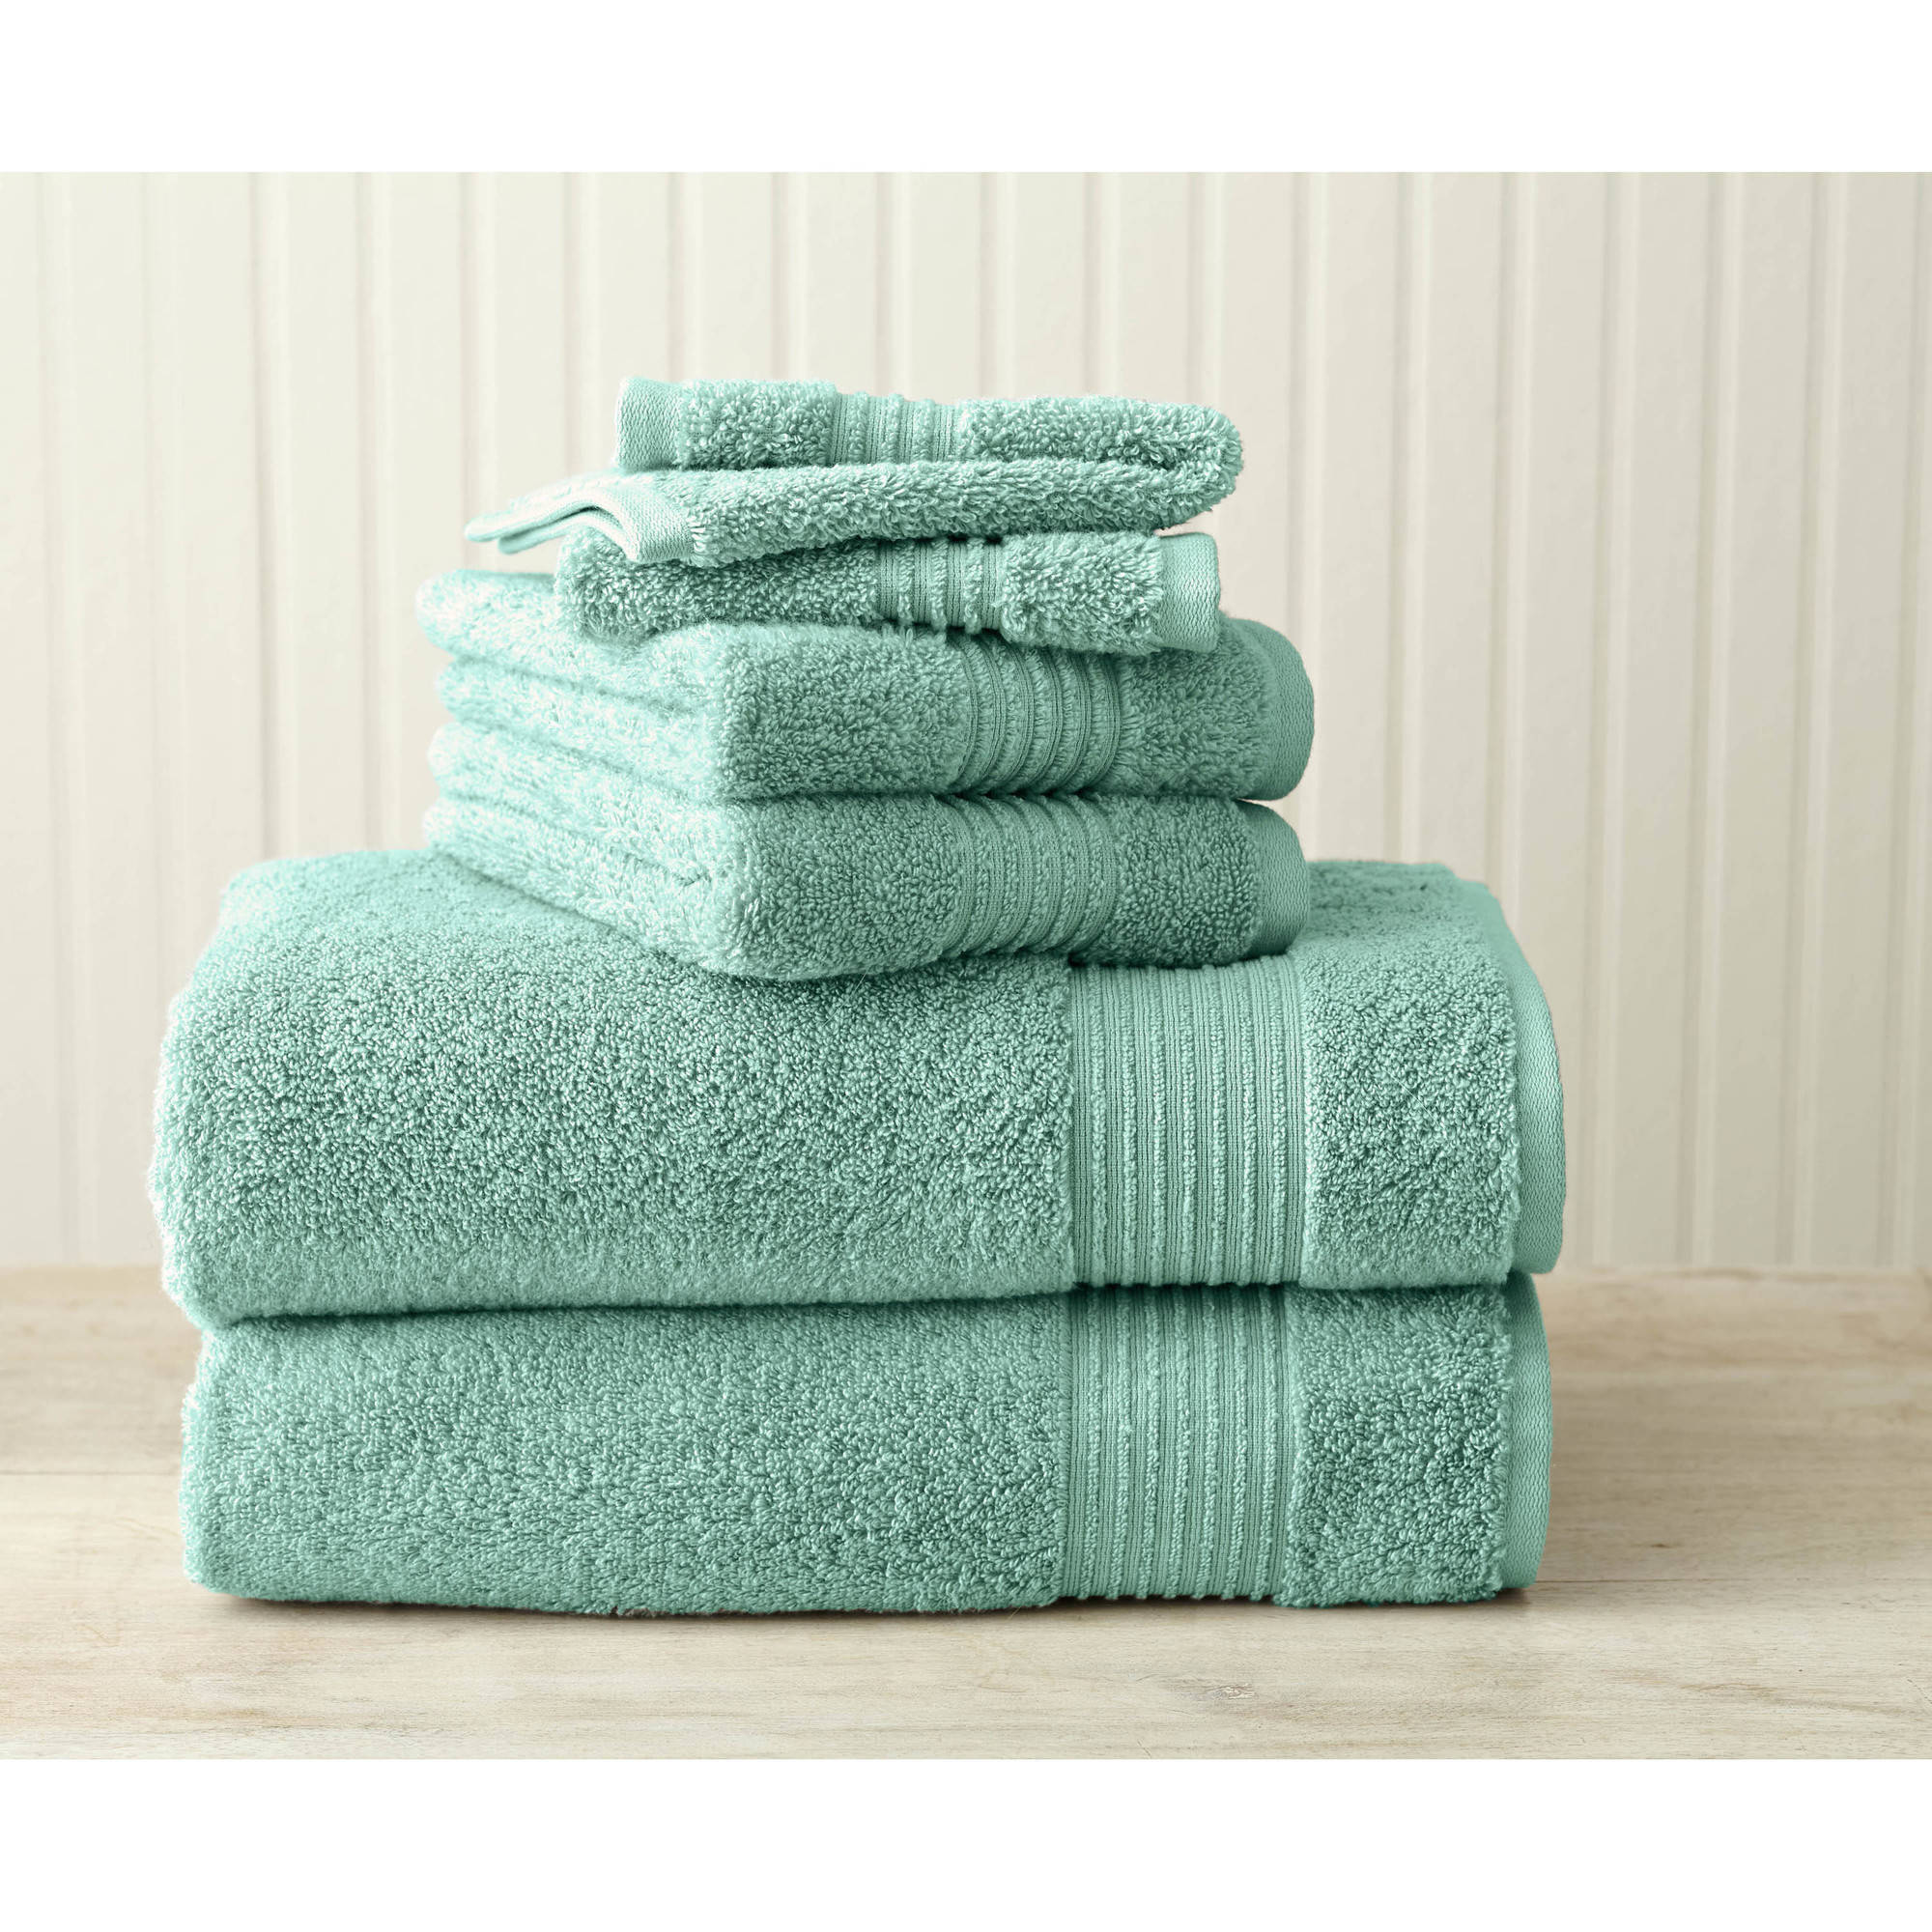 Better Homes and Gardens Extra Absorbent 4-Piece Texture Towel Set, Teal Topaz by Welspun India Limited